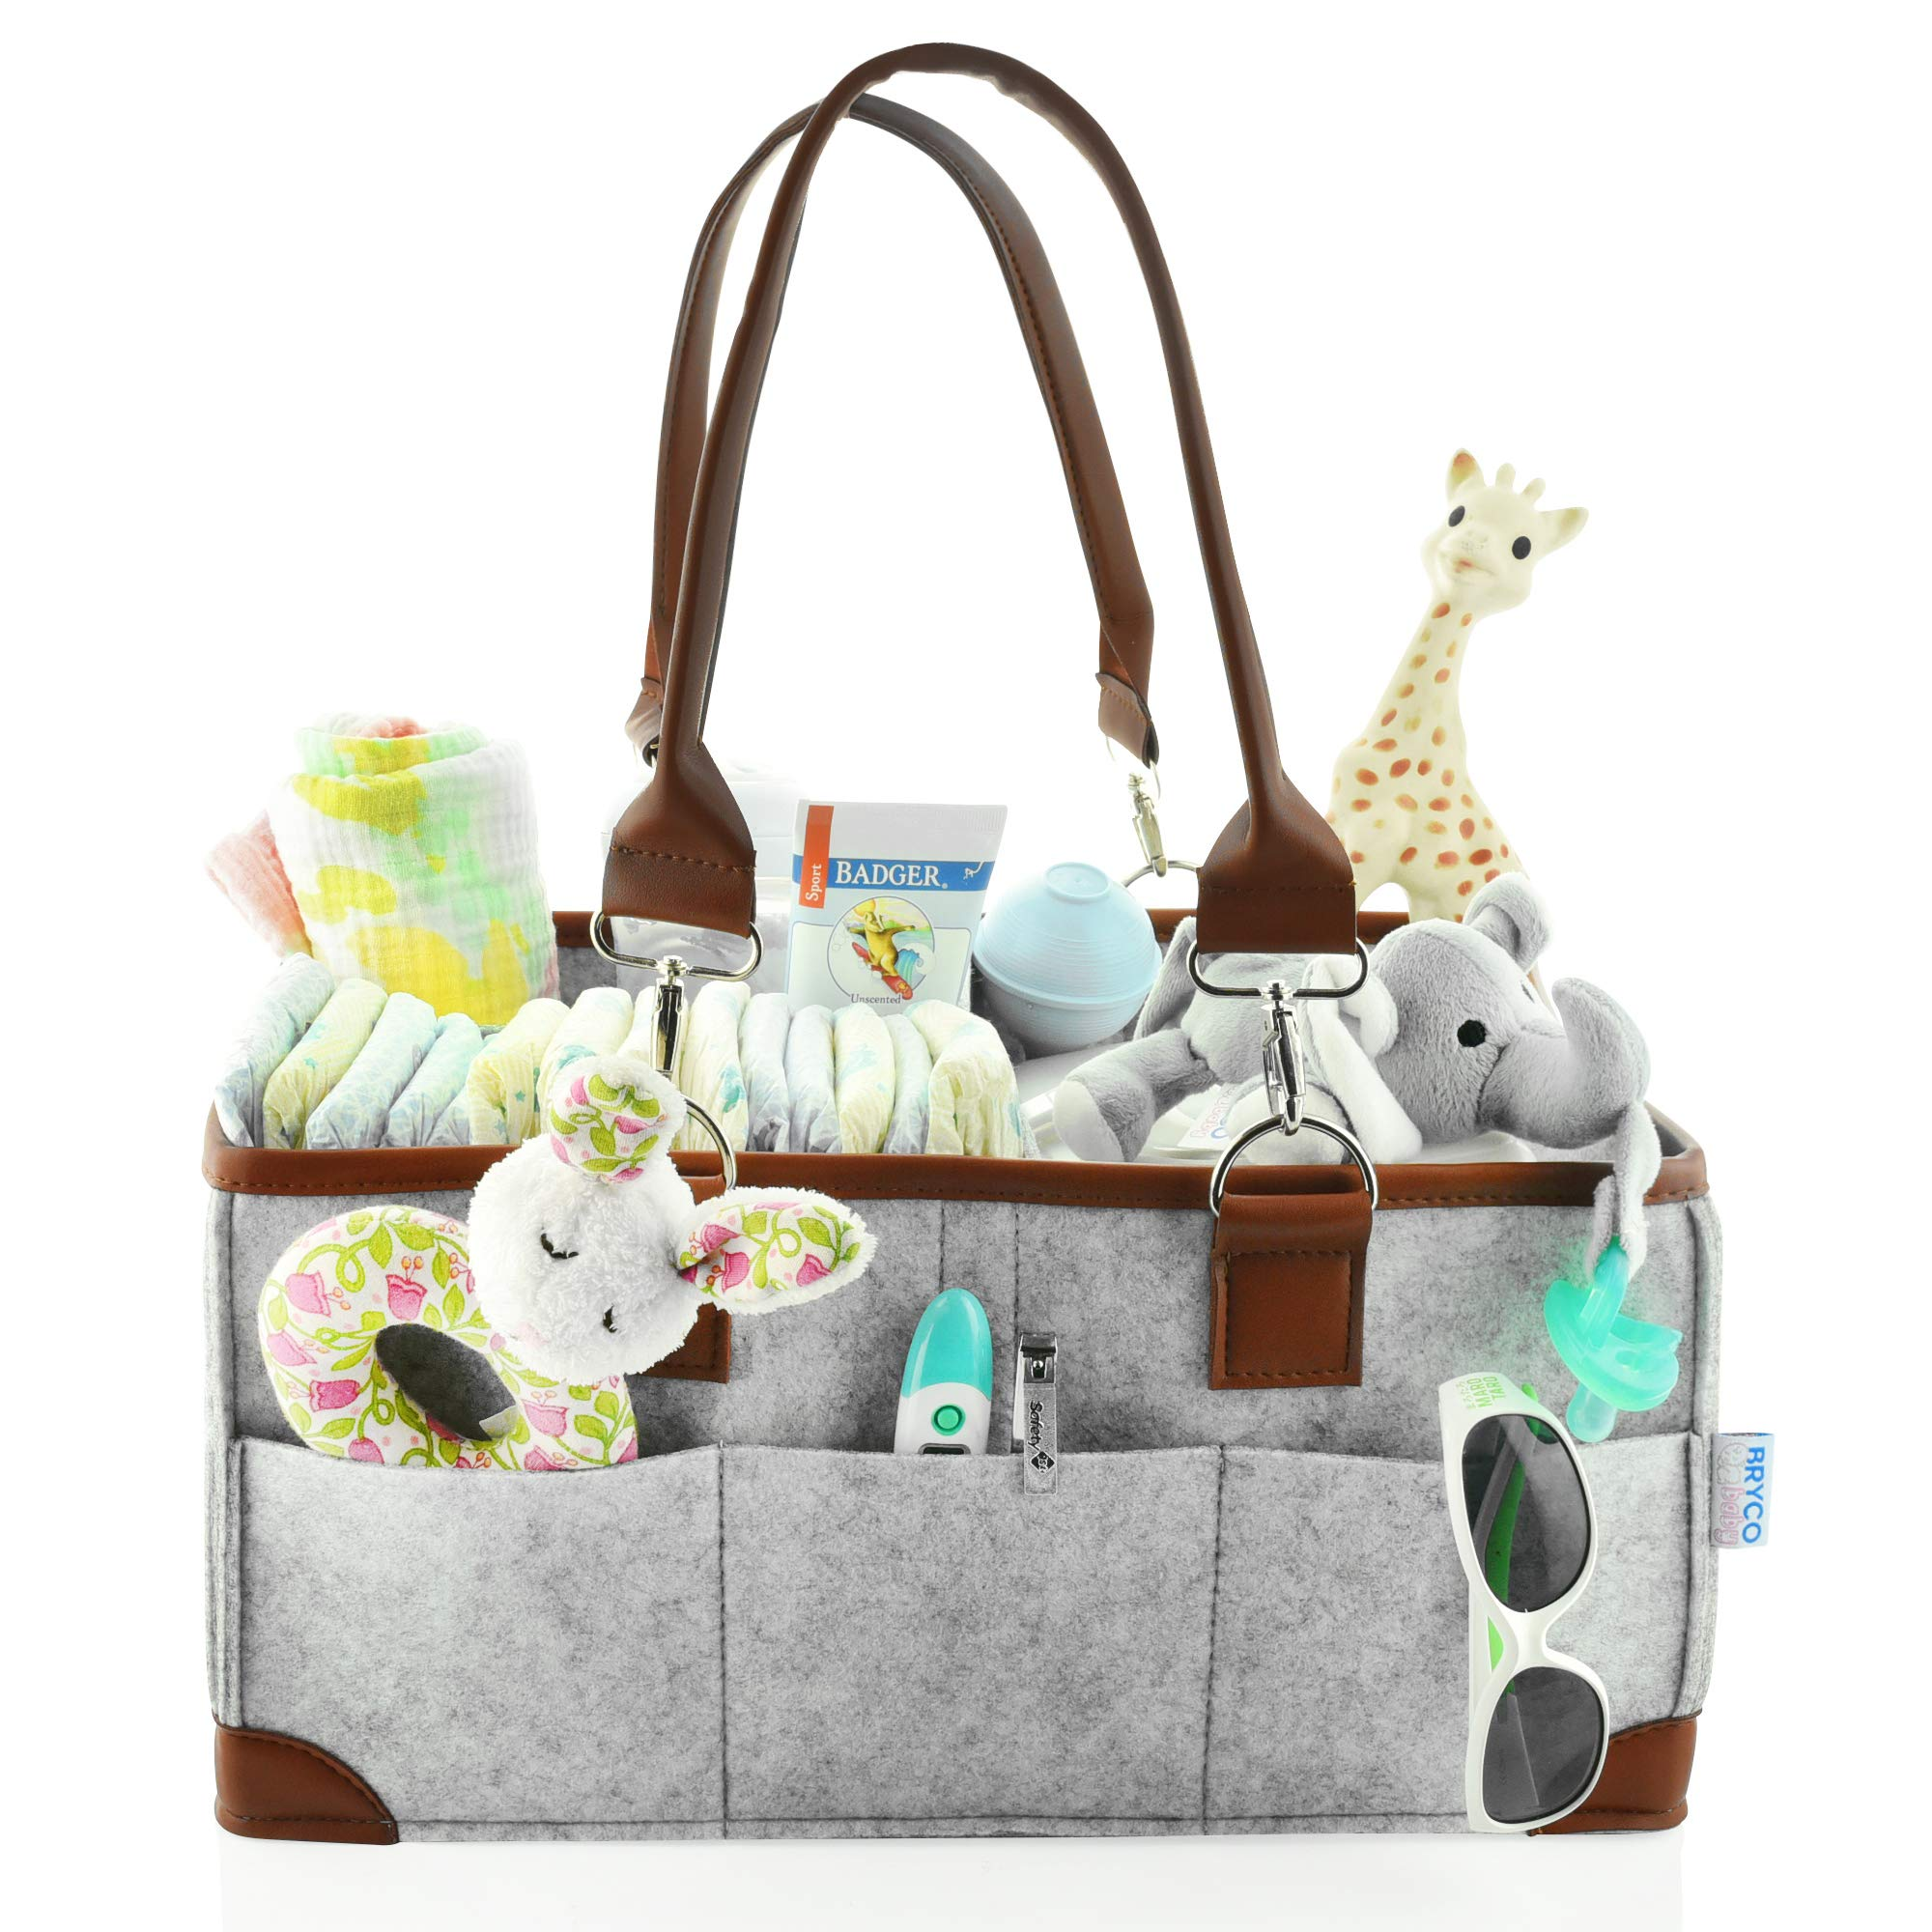 Baby Diaper Caddy Organizer - Portable Storage Basket - Essential Bag for Nursery, Changing Table and Car - Good for Storing Diapers, Bottles, Baby Wipes, Baby's Toys Pacifiers-Gray Leather Handle by Bryco Baby